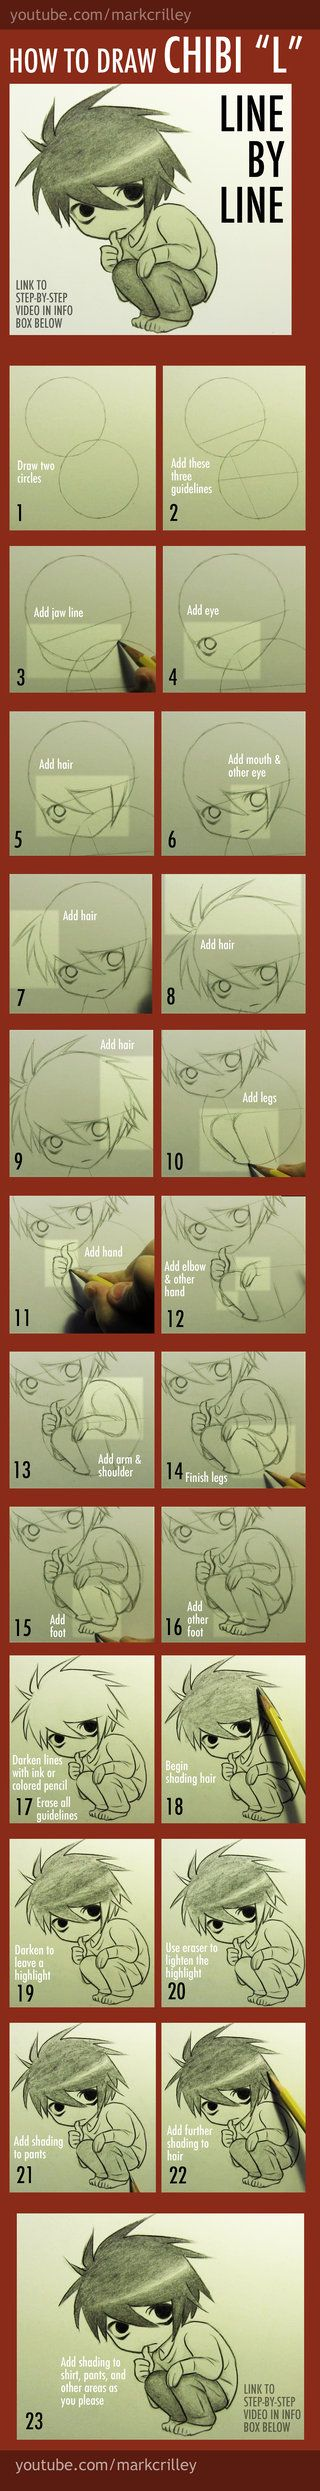 How to Draw Chibi L from Death Note by markcrilley on deviantART